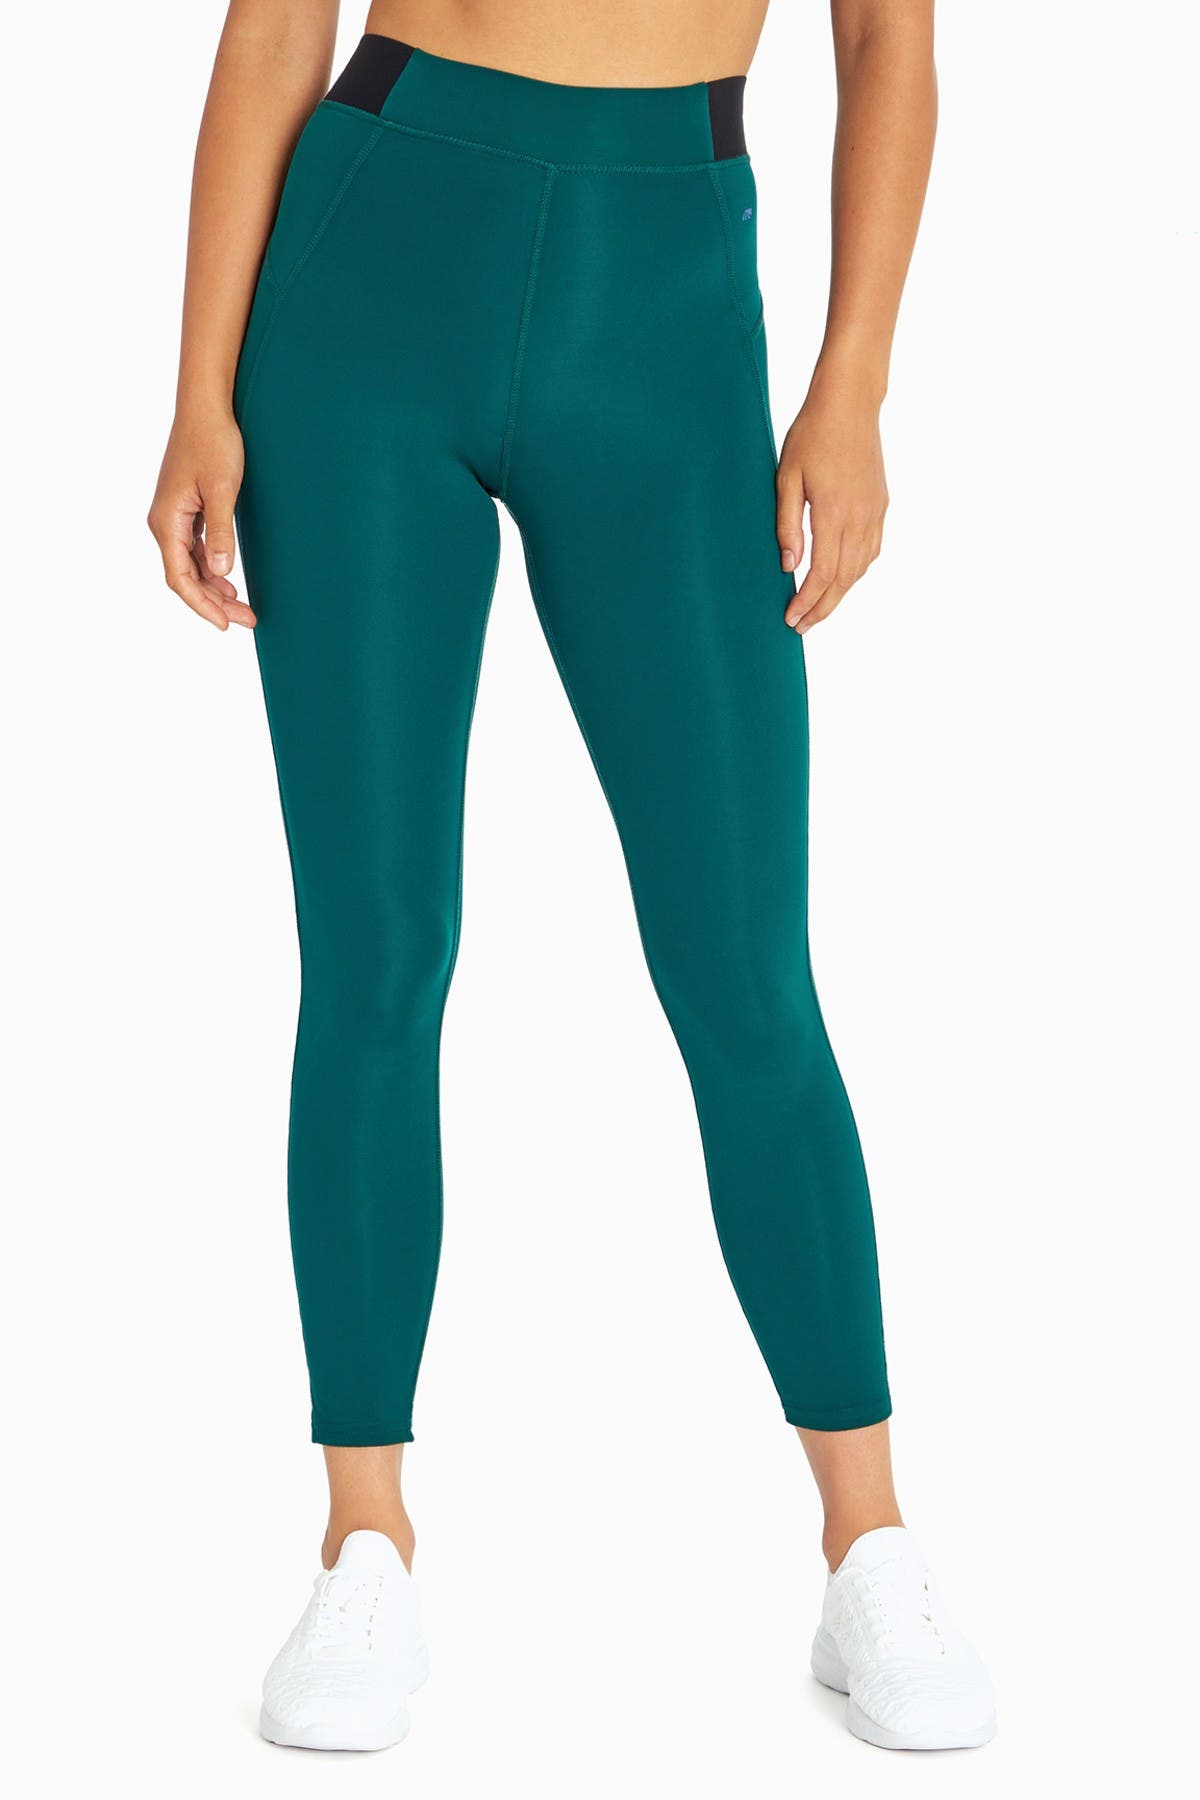 Image of CYCLE HOUSE Chaser 25 Inch Tight Legging